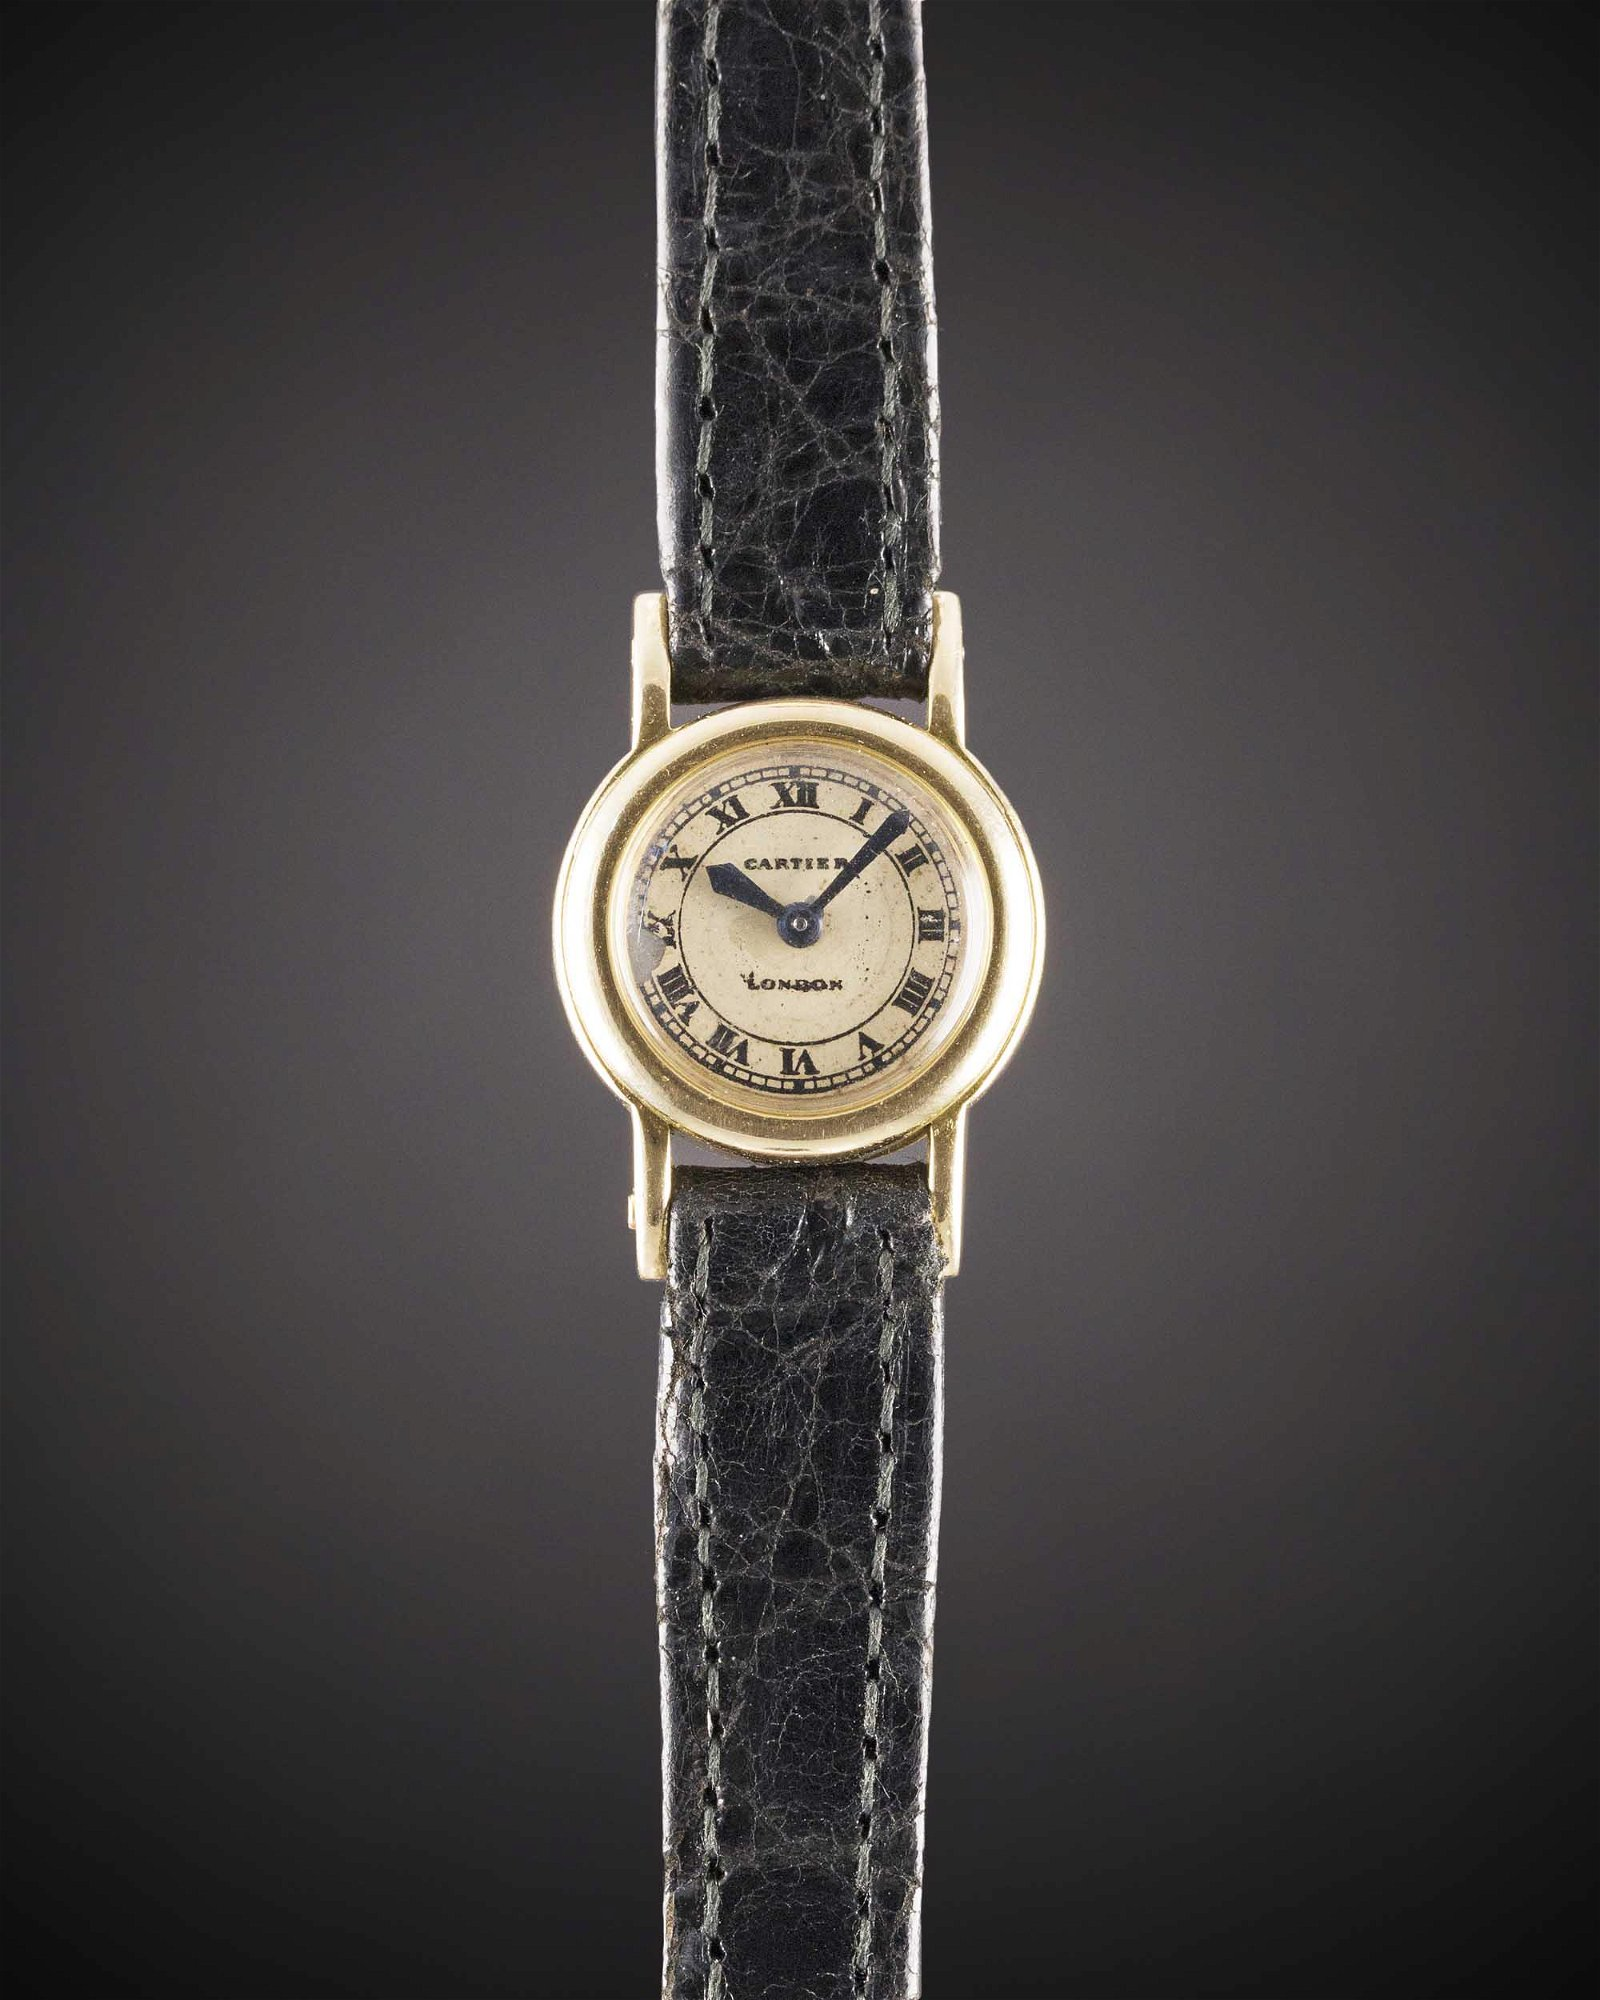 A RARE LADIES 18K SOLID GOLD CARTIER LONDON BACKWIND